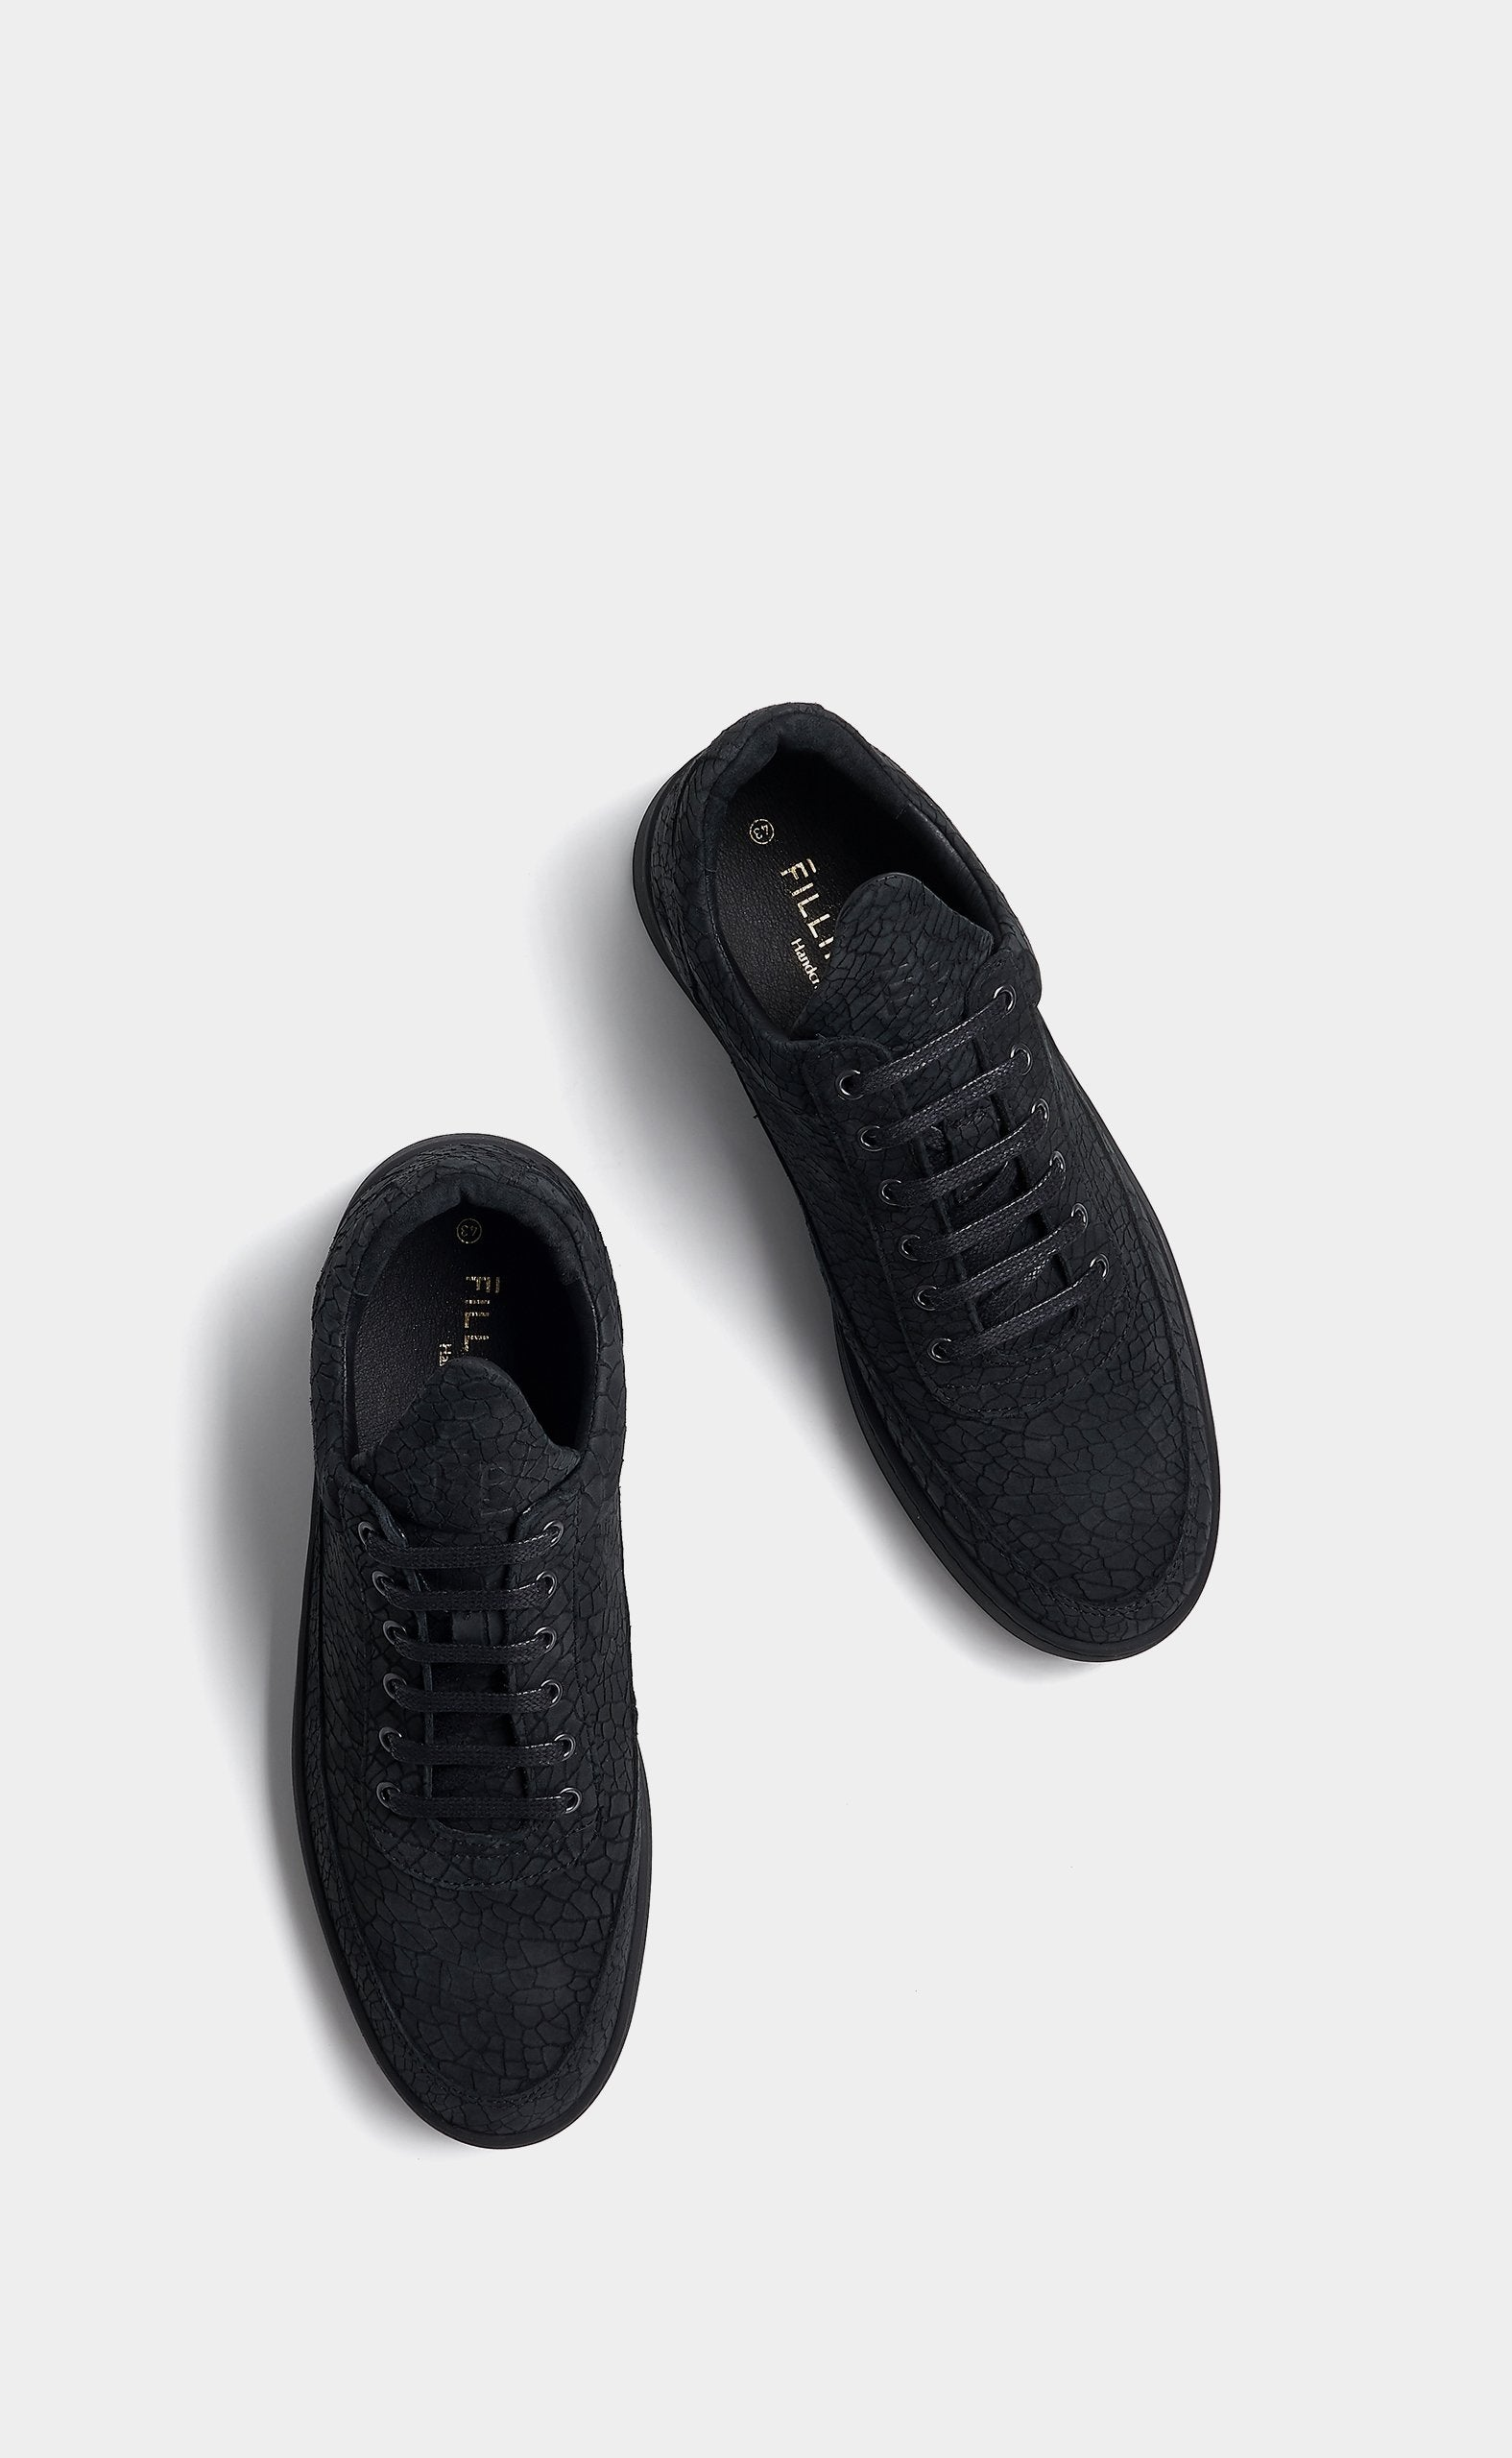 Low Top Plain Ceres Black